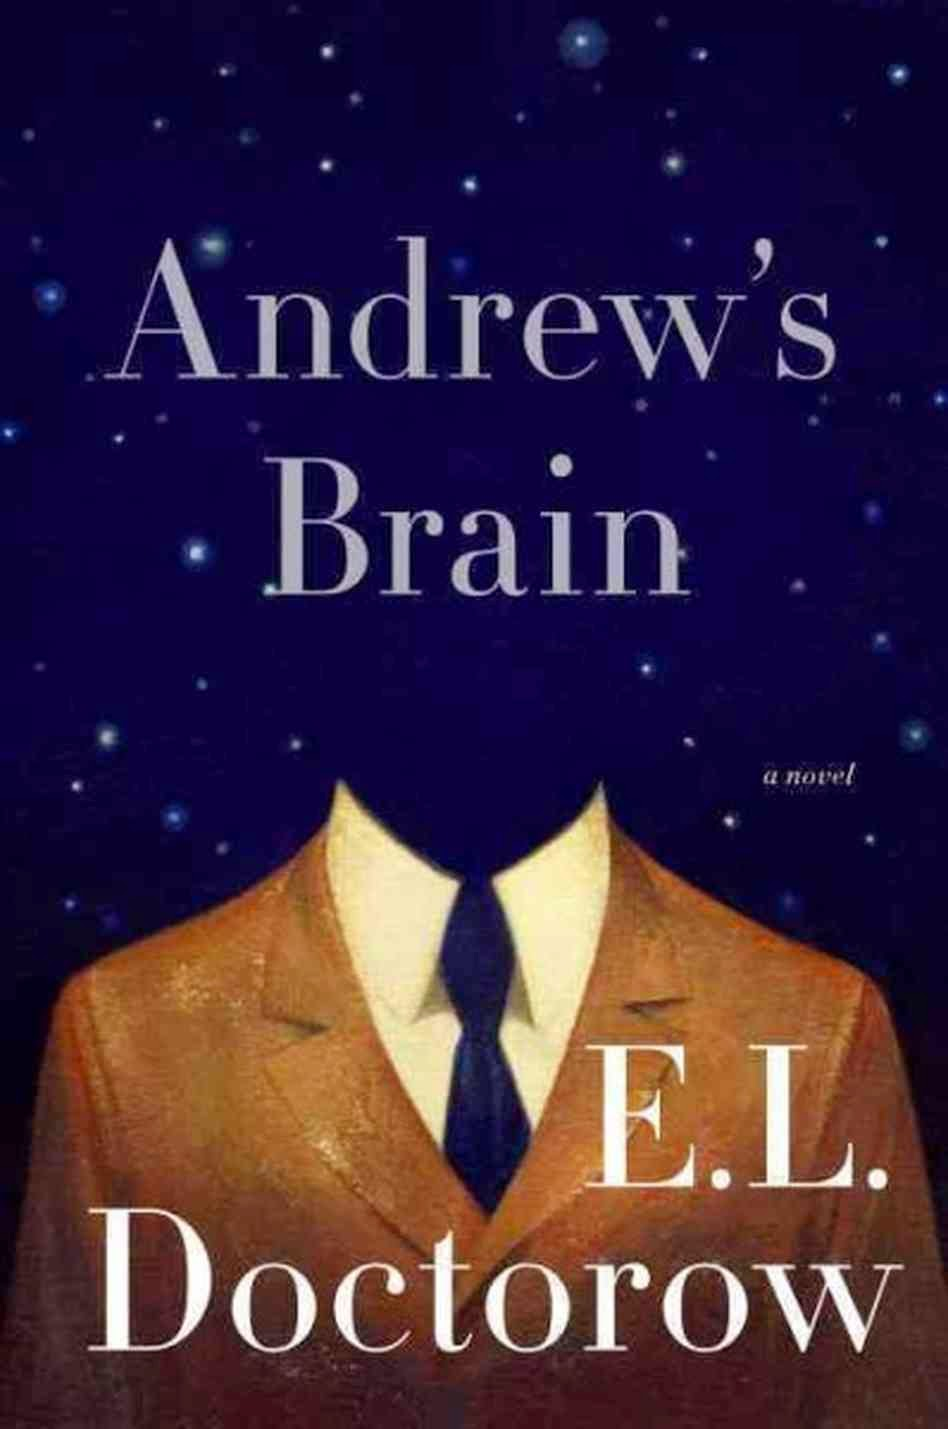 picture of book cover for Andrew's Brain by E.L. Doctorow